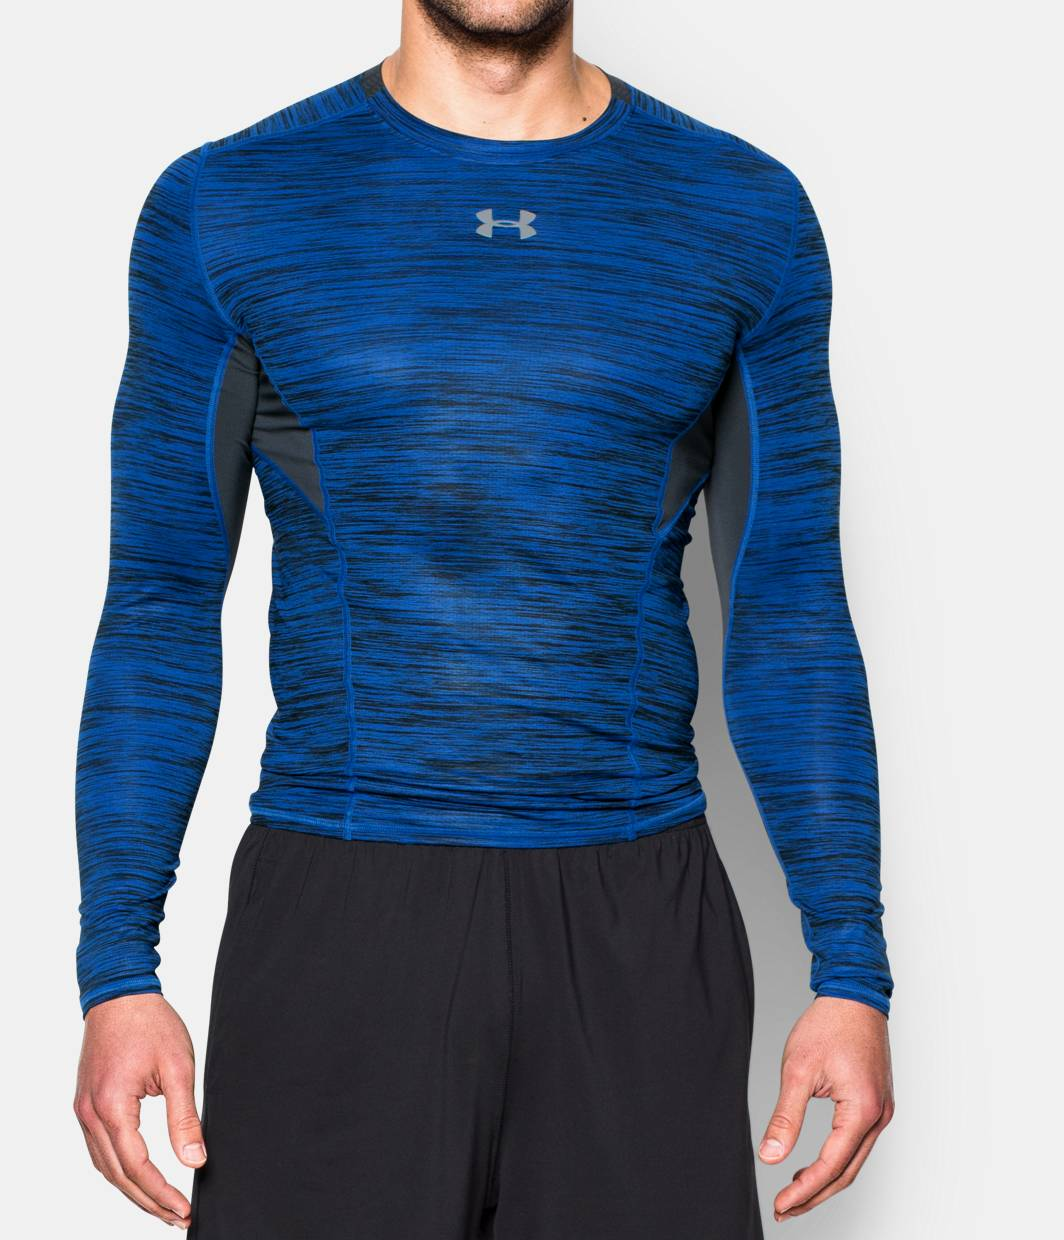 Men 39 s ua coolswitch long sleeve compression shirt under for Ua coolswitch compression shirt